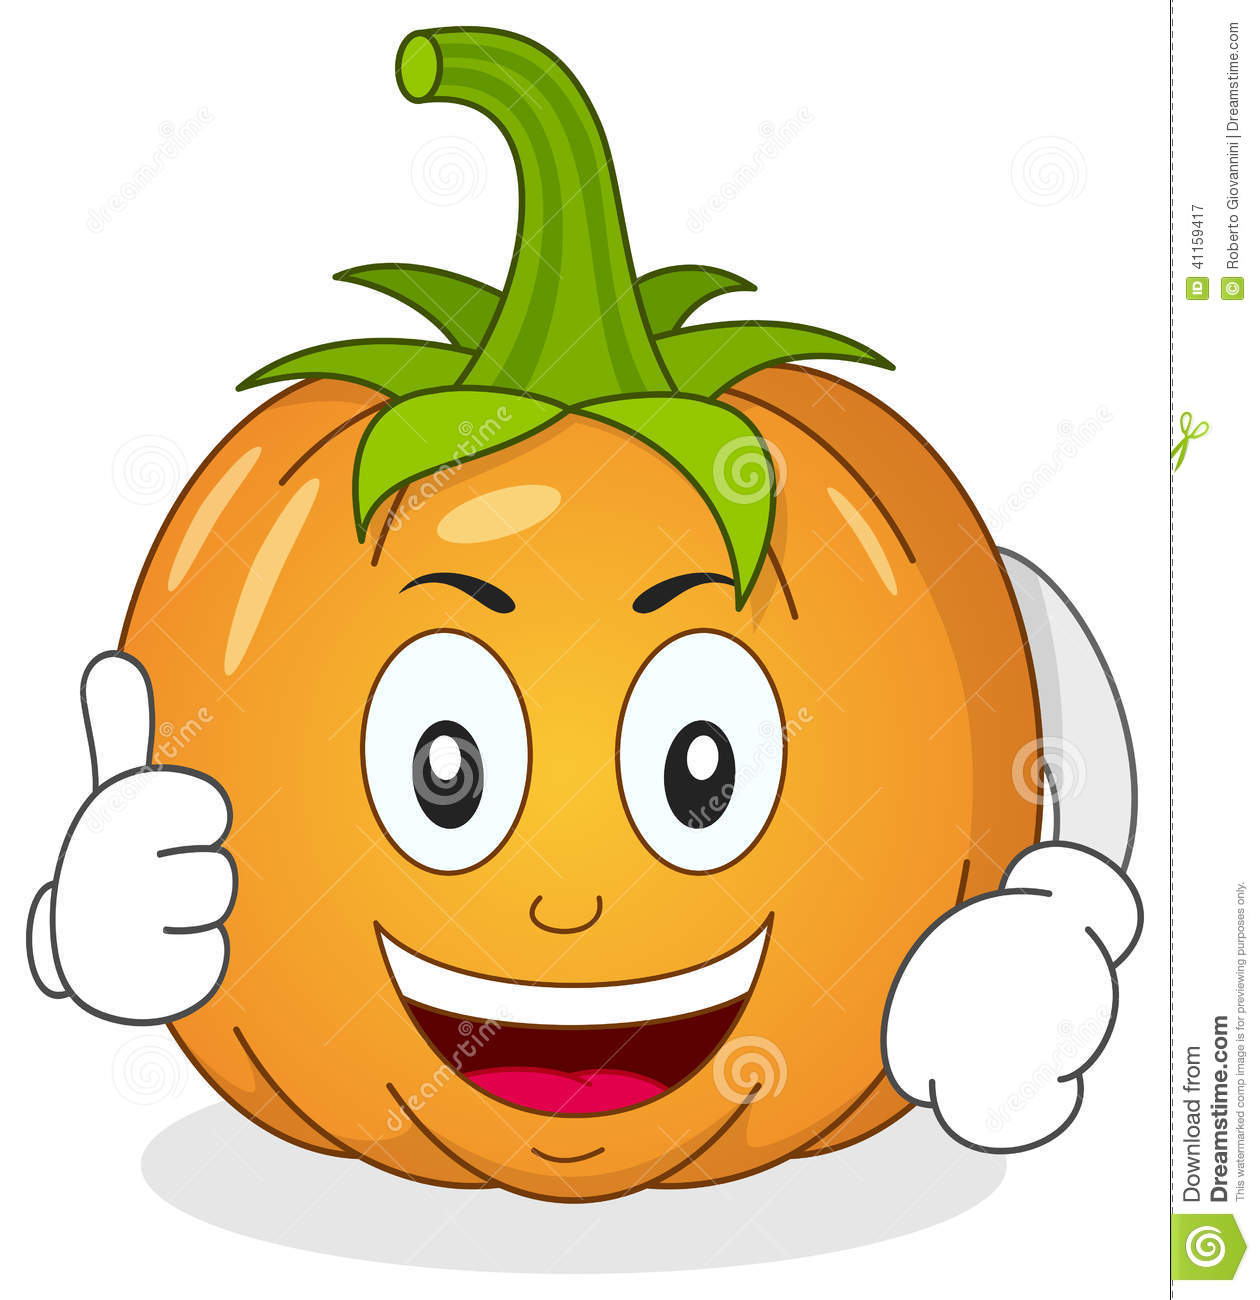 Pumpkin character clipart image free download Funny Pumpkin Character With Thumbs Up Stock Vector - Image: 41159417 image free download